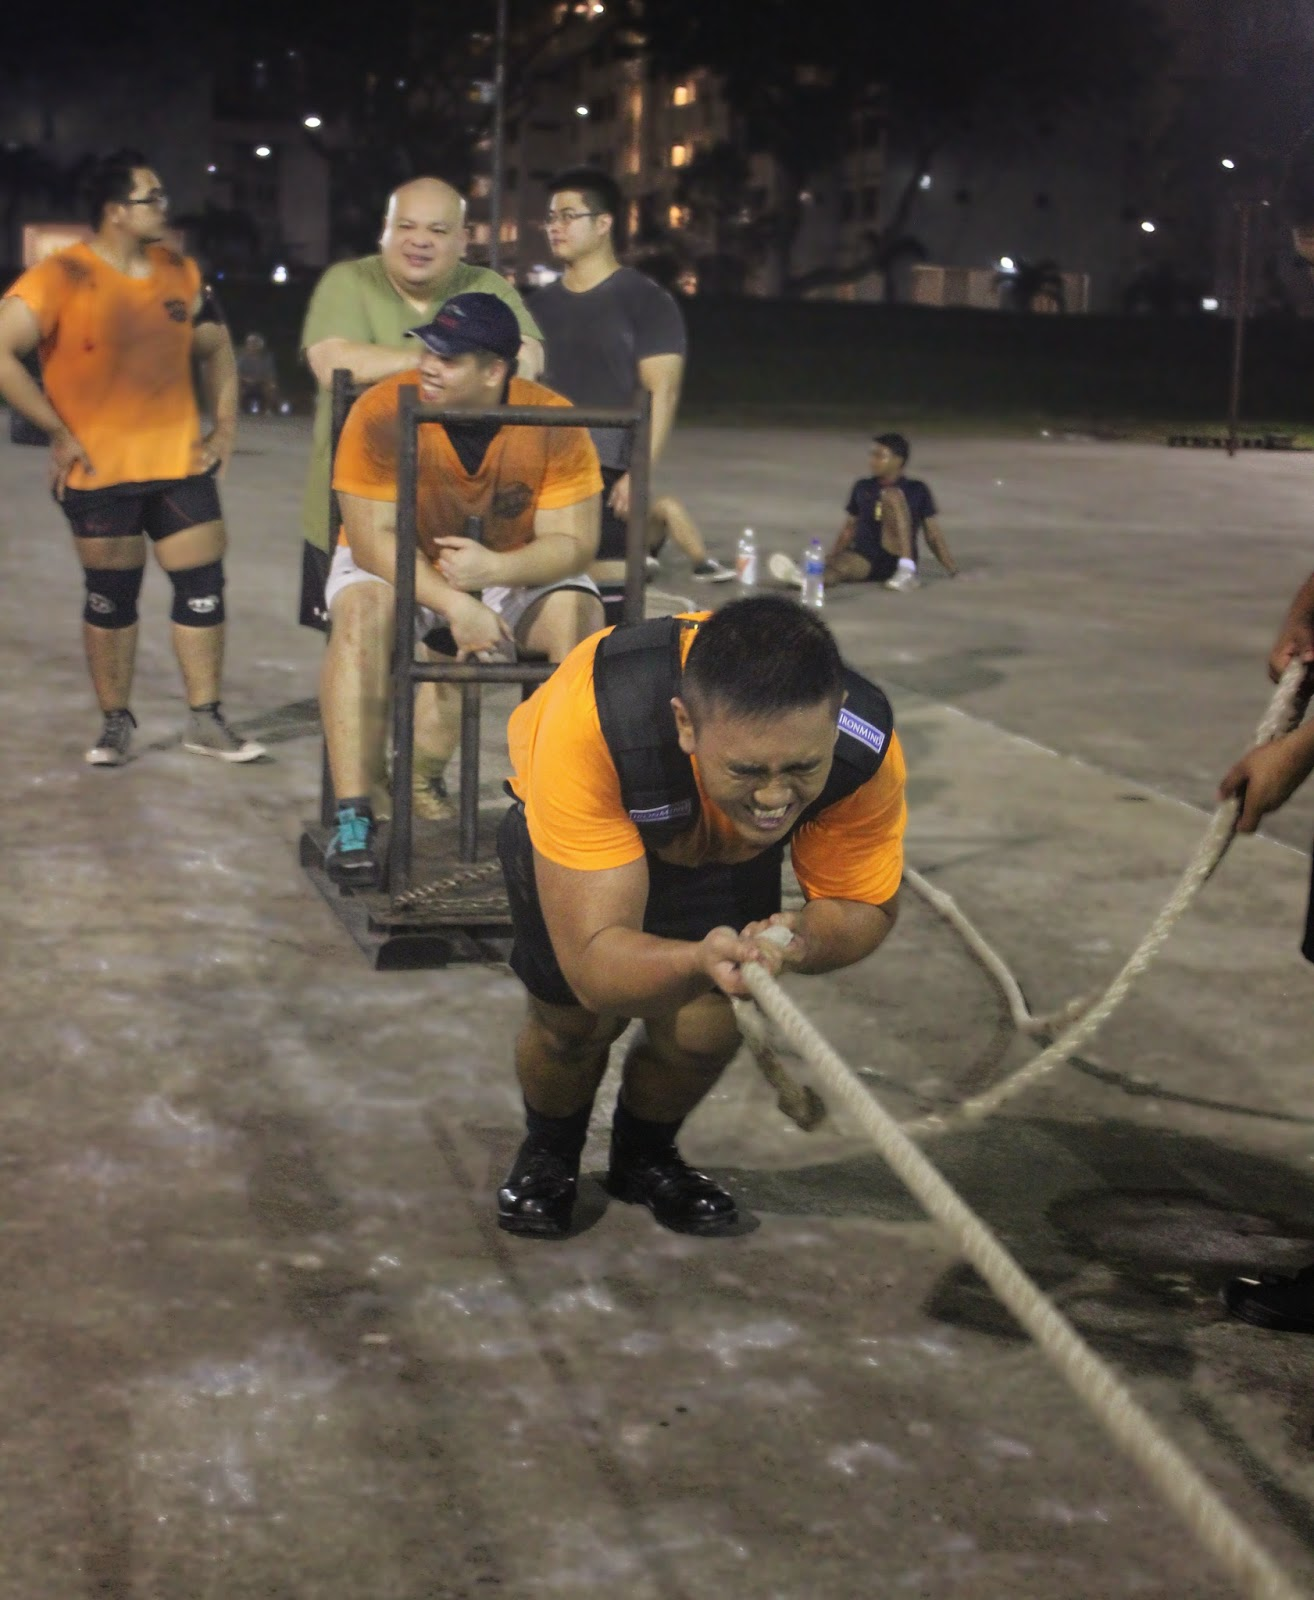 SG Titans is a strongman community in Singapore, the group does implements like tyre flips and farmer's walk at Woodlands Megacourt